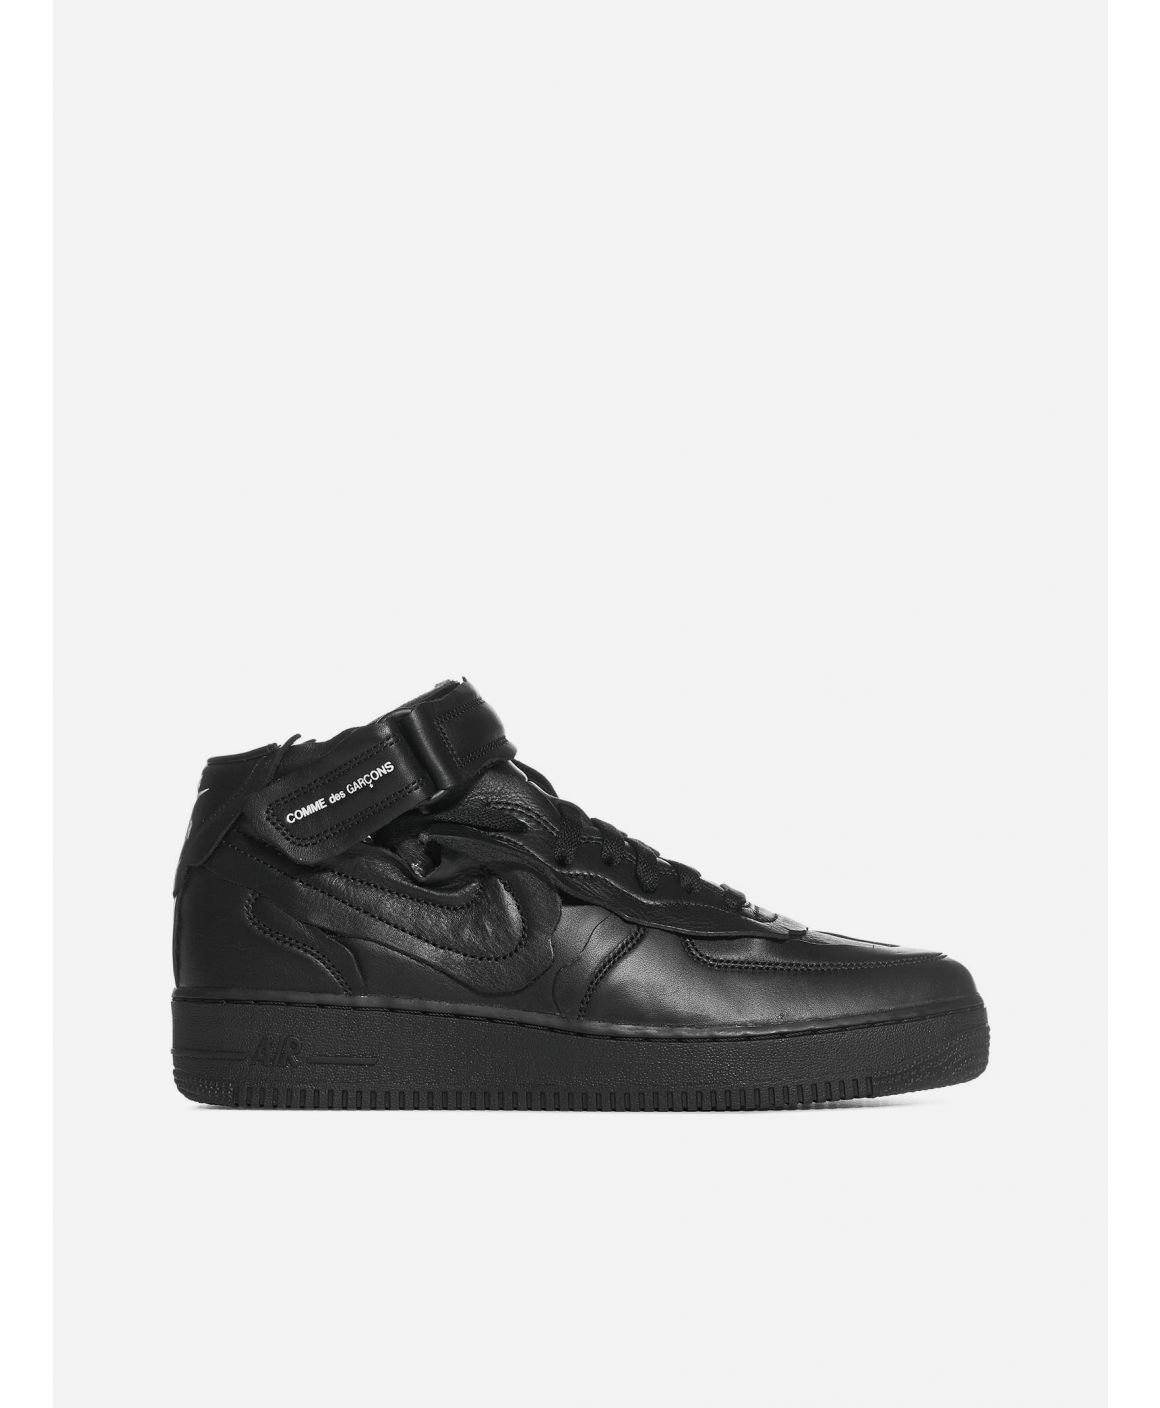 Air Force 1 Mid leather sneakers